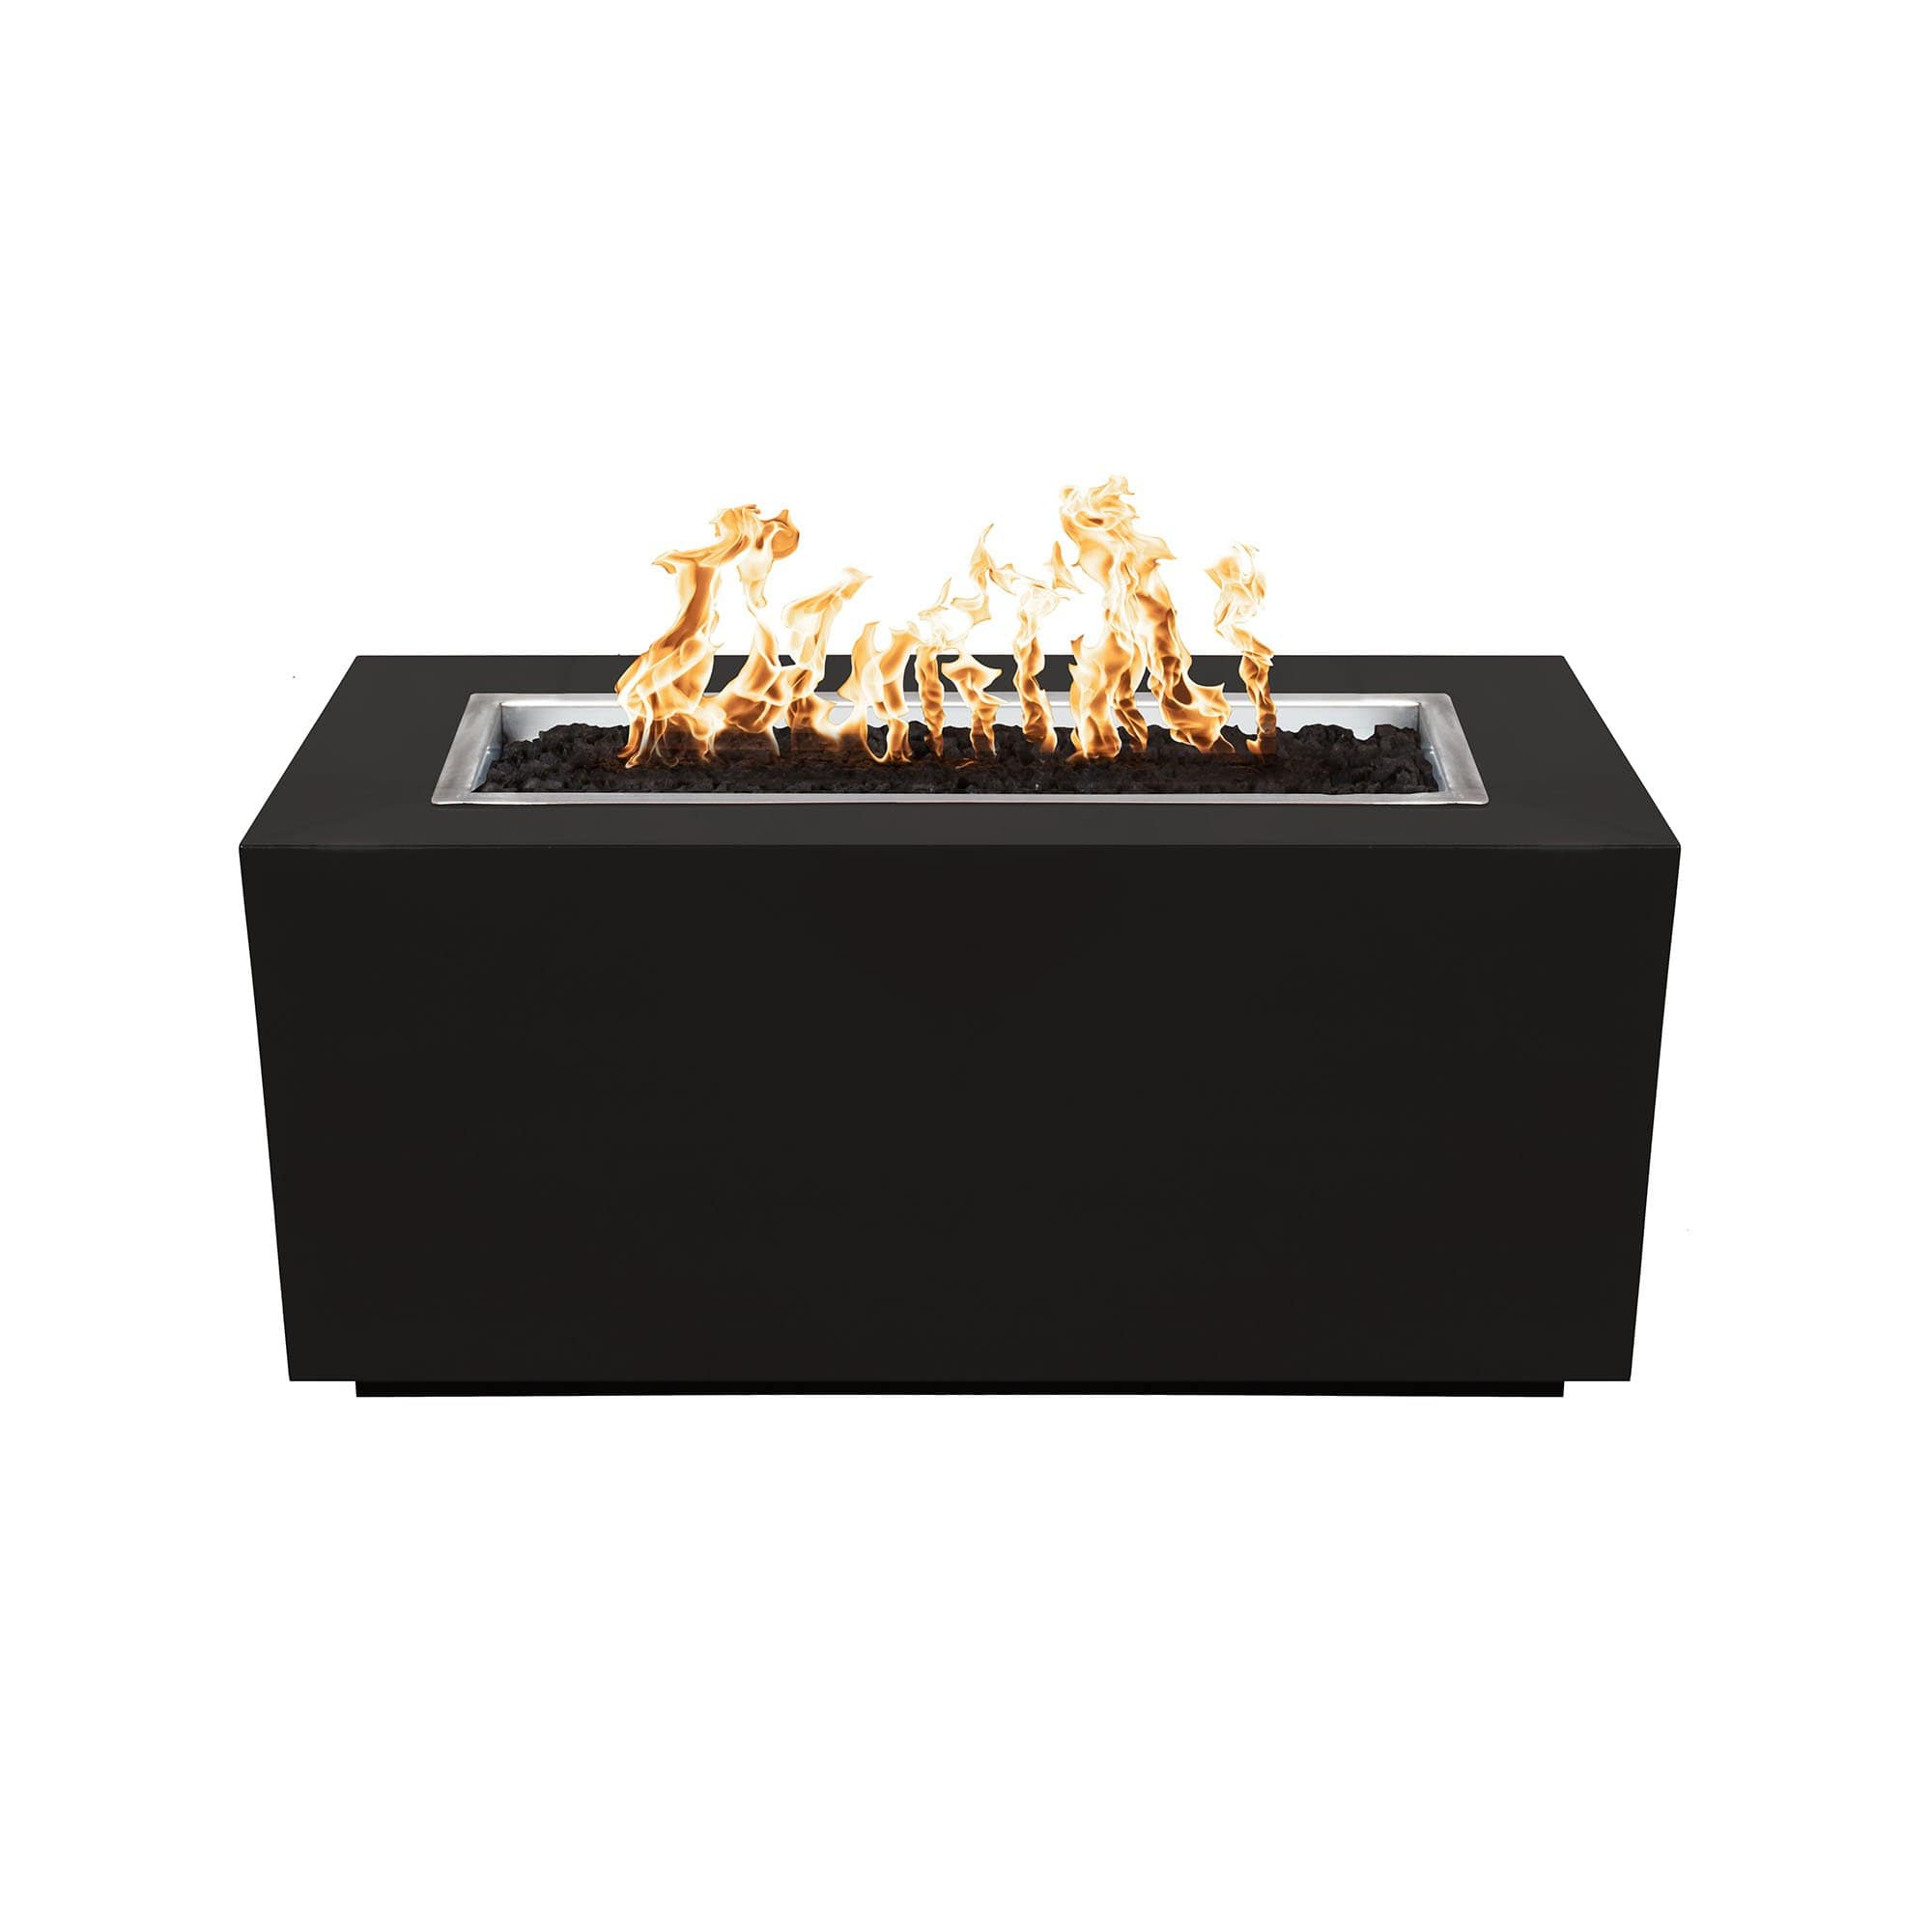 The Outdoor Plus Pismo Metal Fire Pit OPT-R8424 Fire Pit The Outdoor Plus Black Powdercoat Electronic Ignition Natural Gas